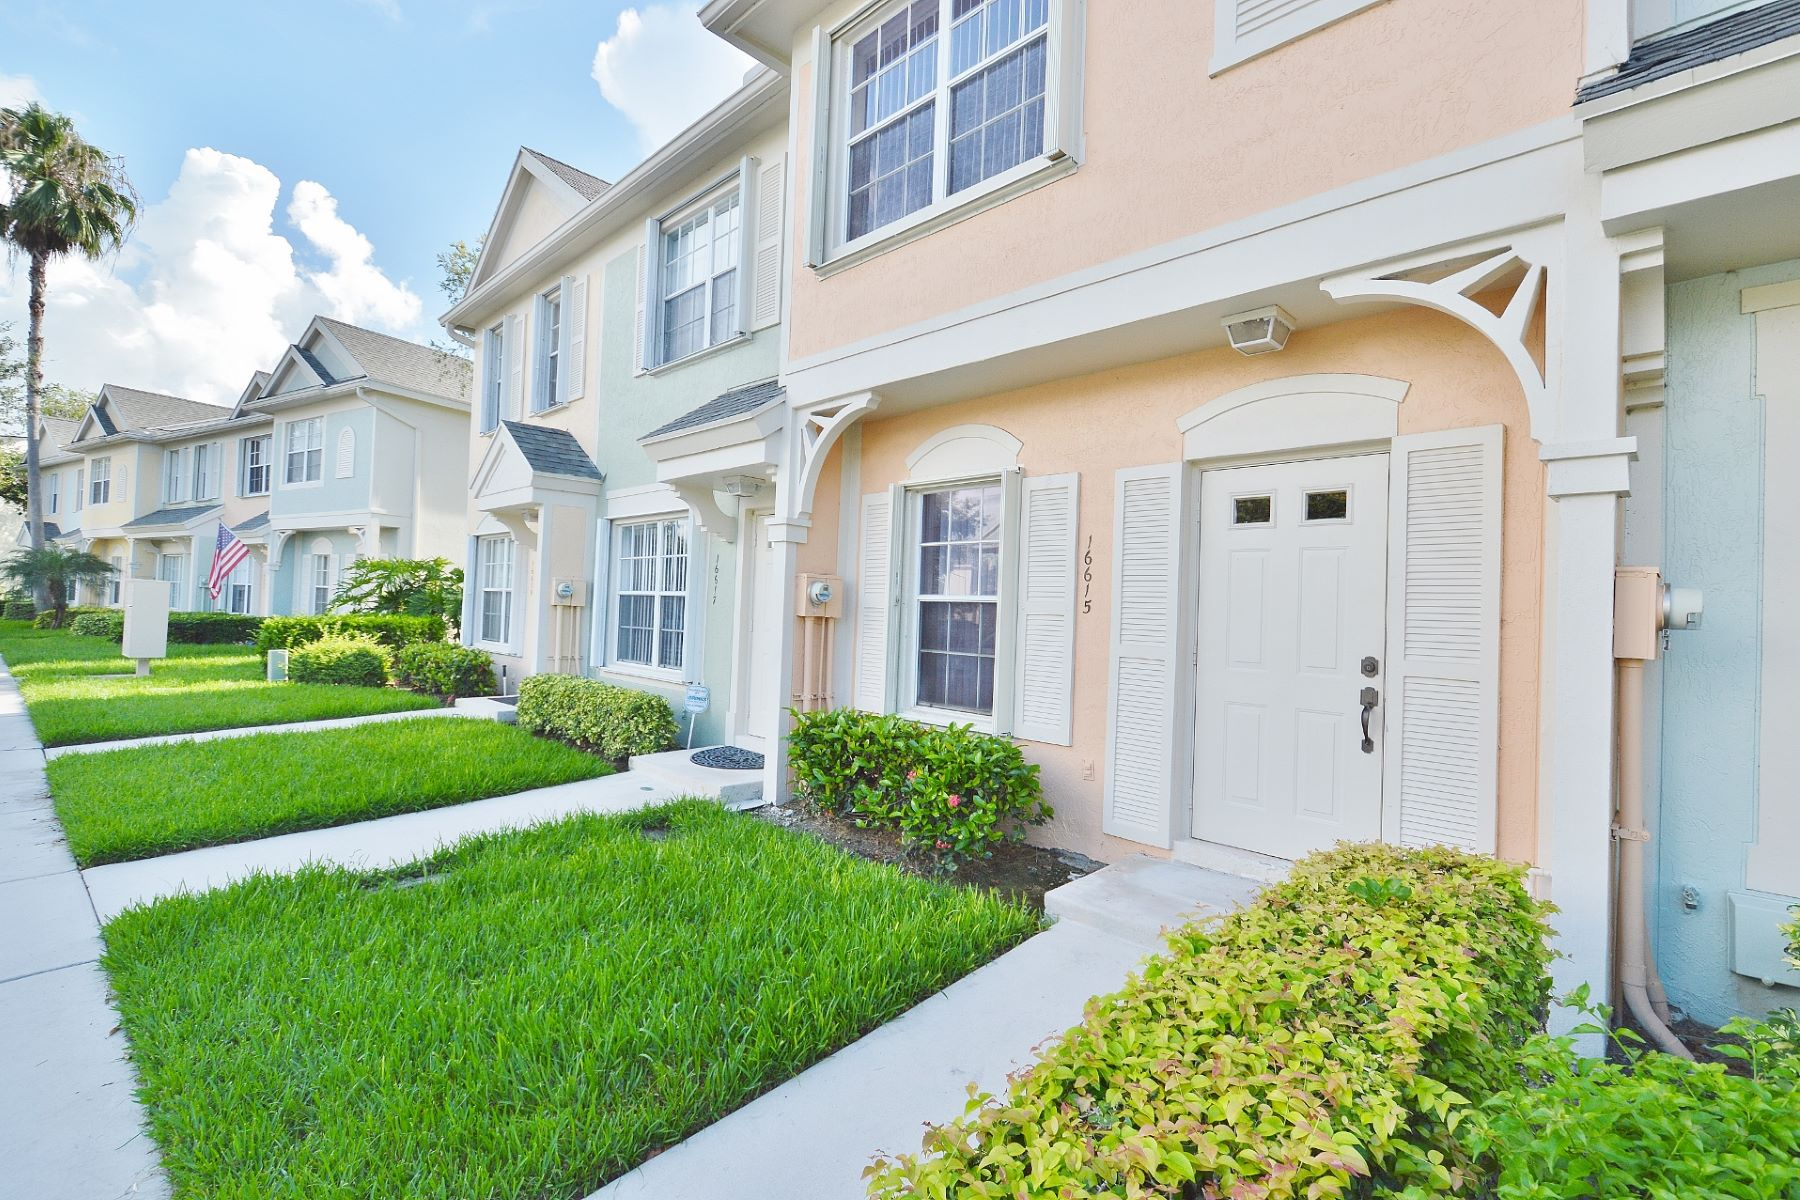 تاون هاوس للـ Rent في 16615 Hemingway Dr Weston, Florida, 33326 United States